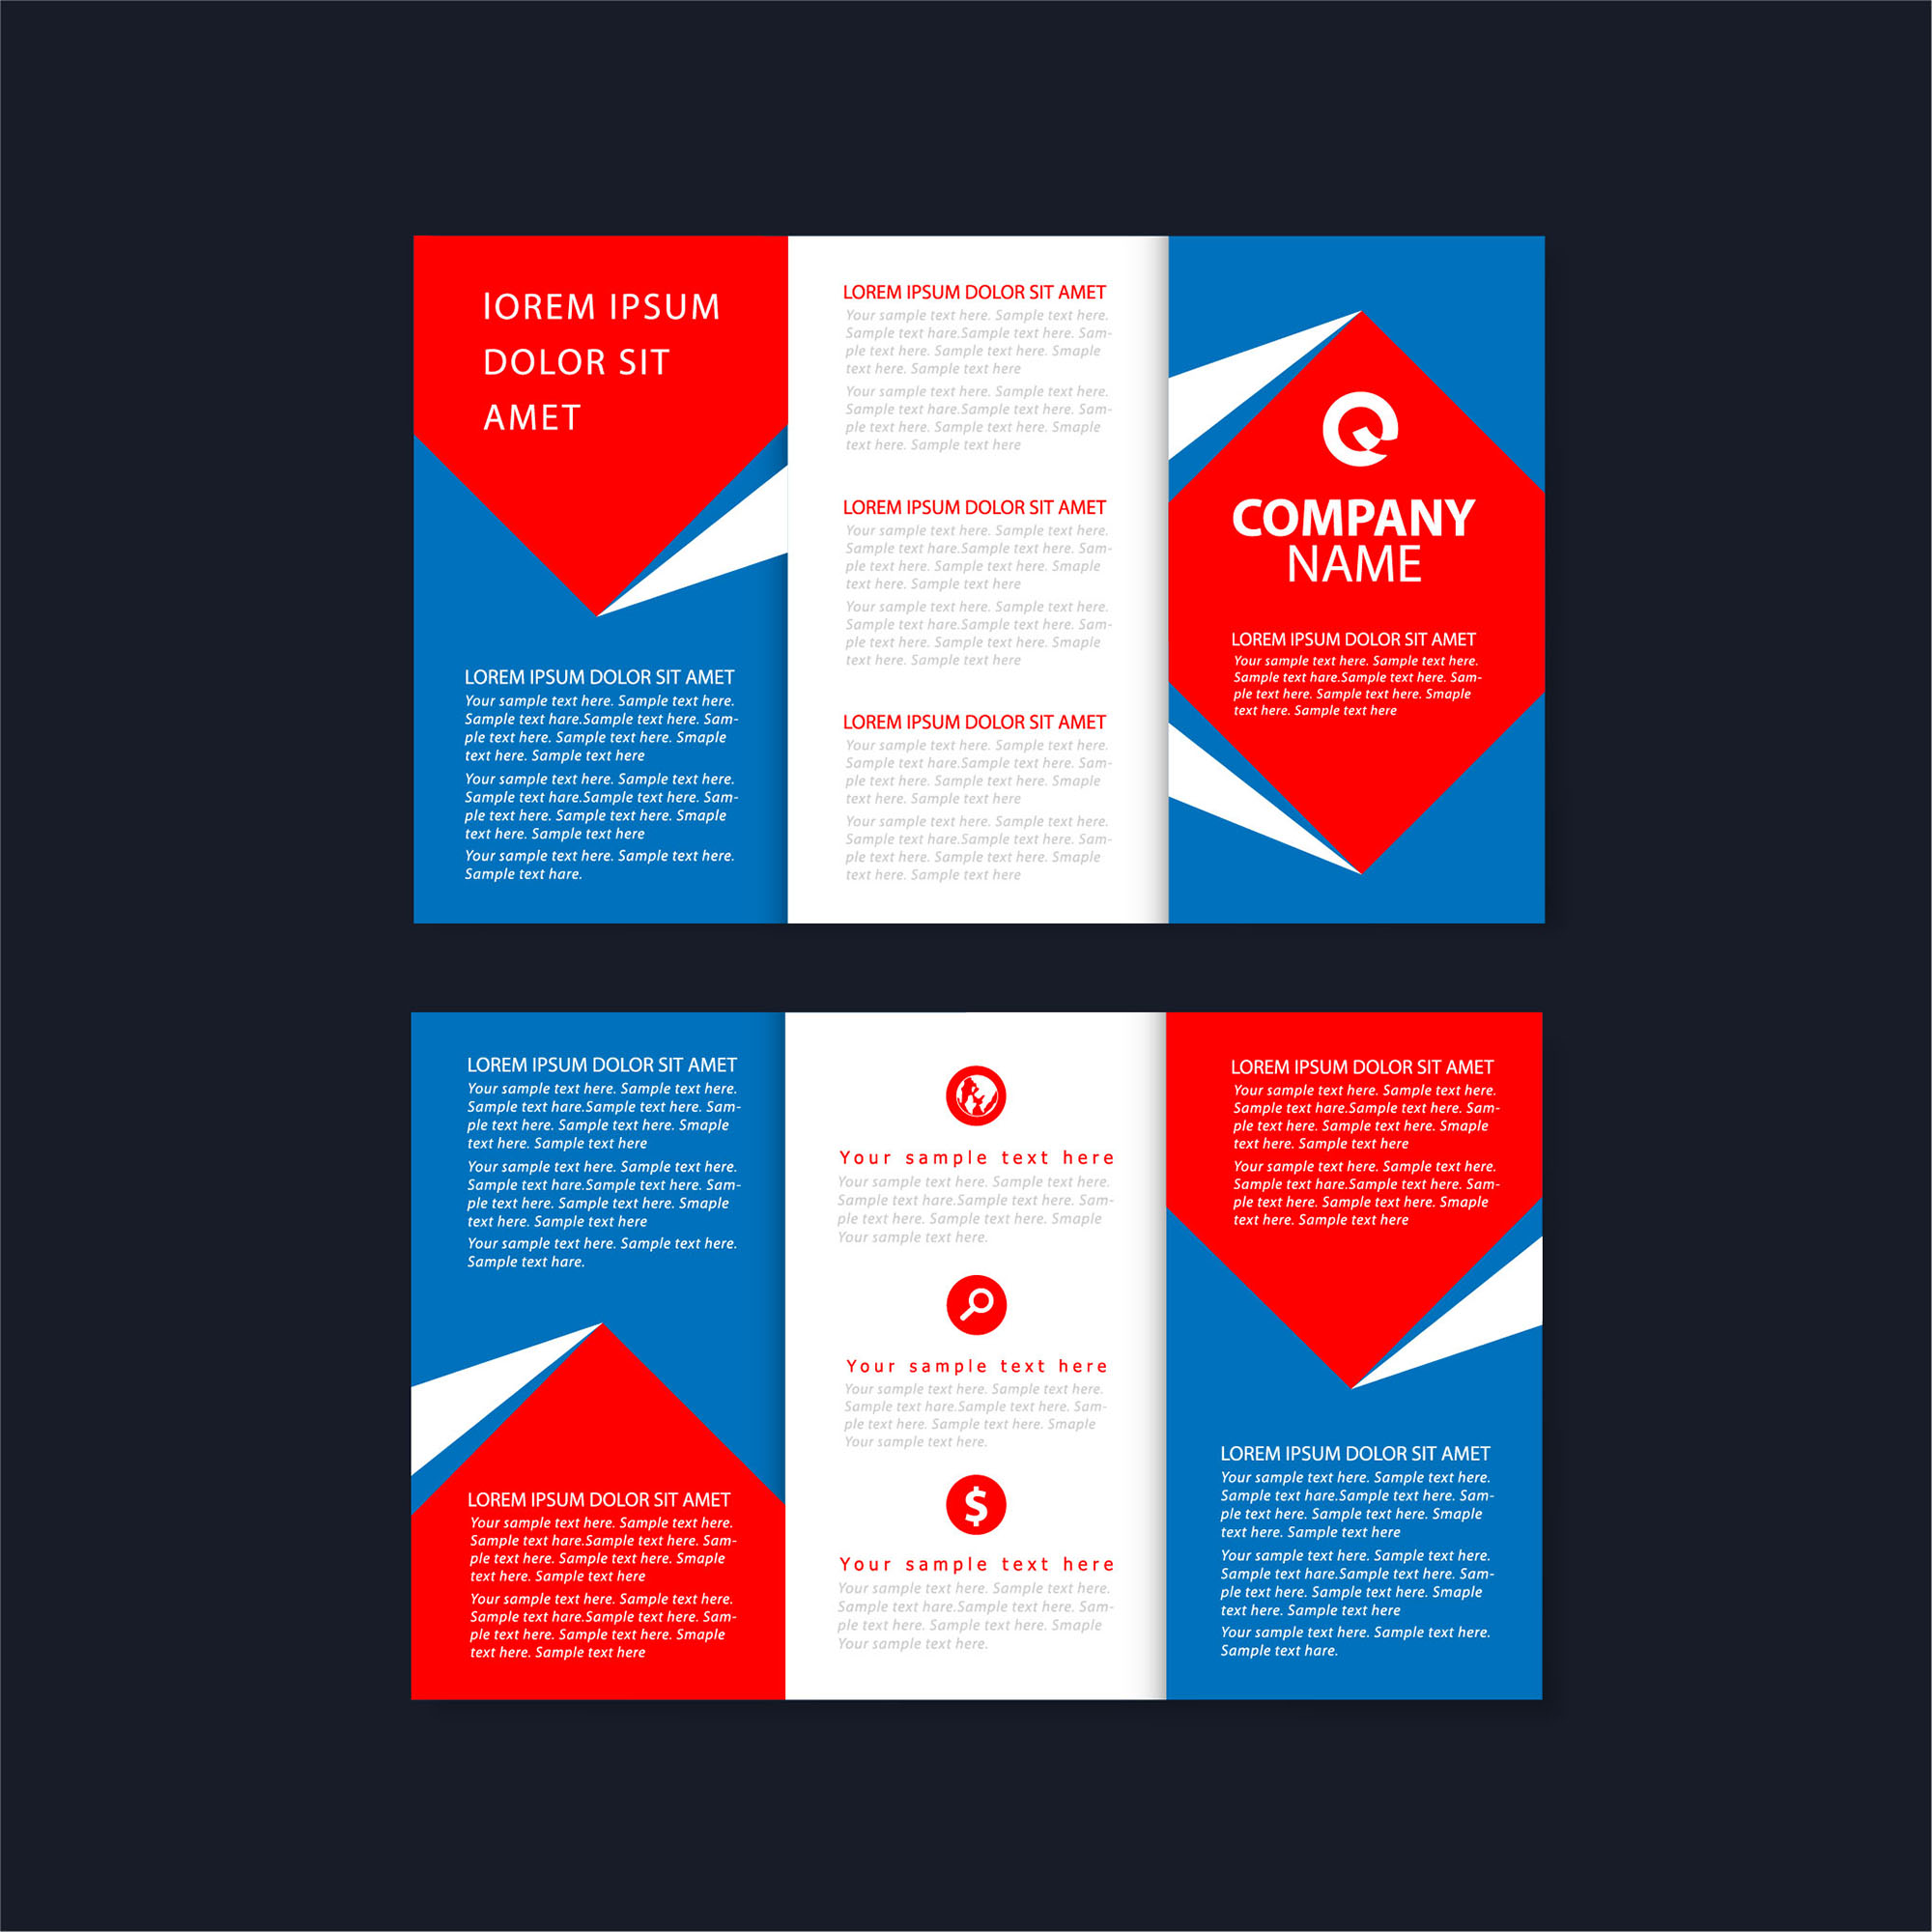 Vector Trifold Brochure Template Free Download Wisxicom - Business brochure templates free download